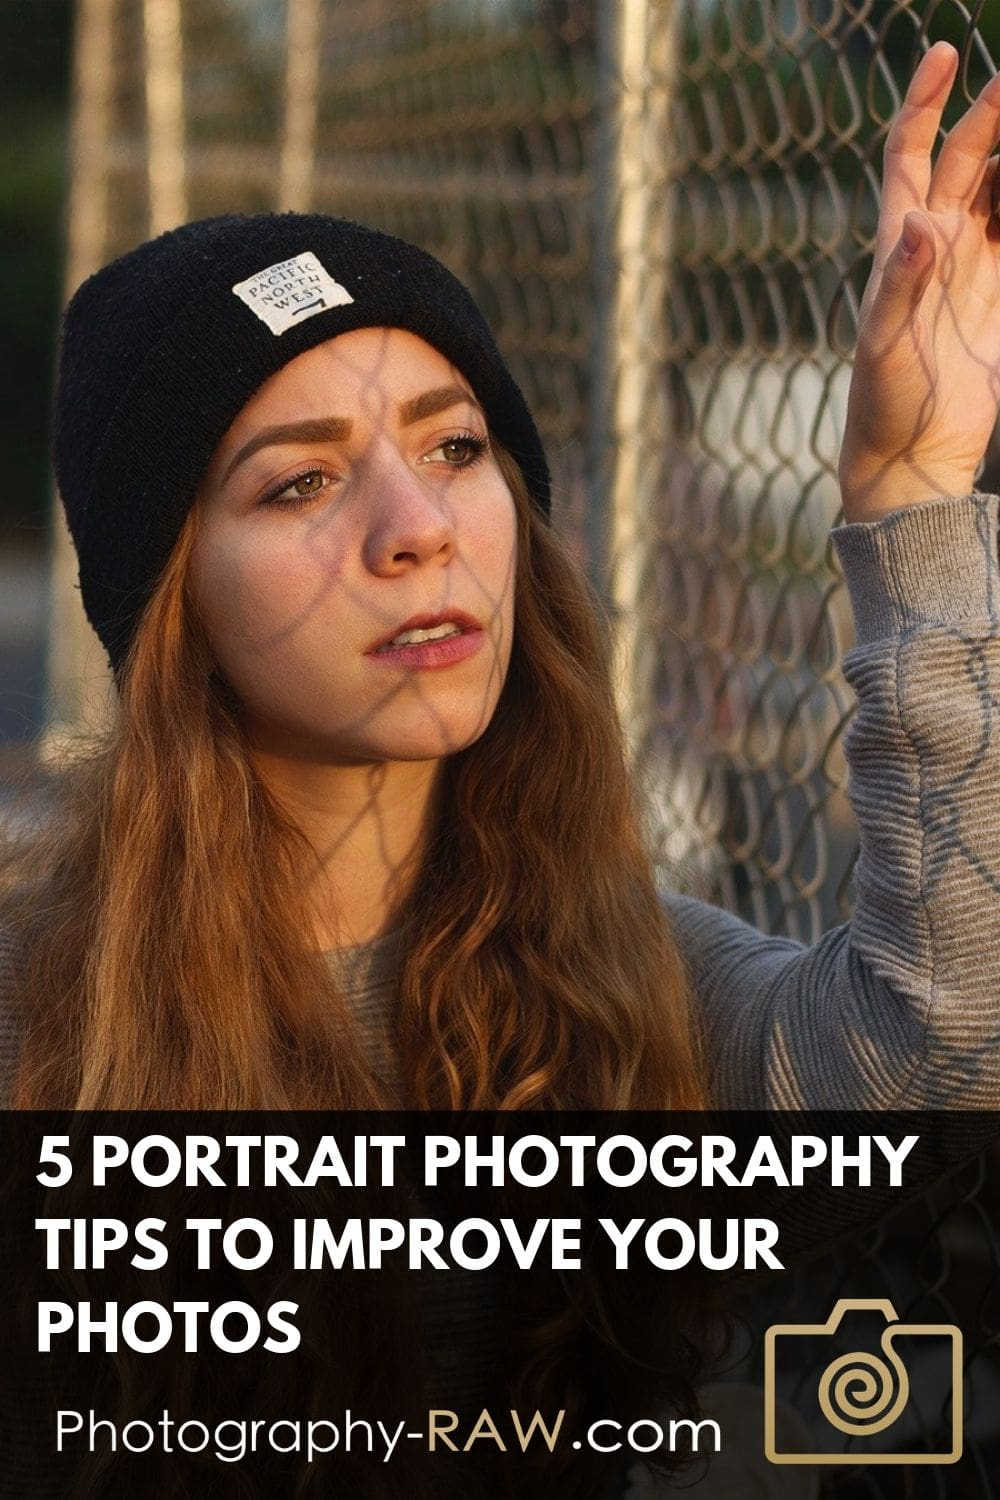 5 Portrait Photography Tips to Improve Your Portraits